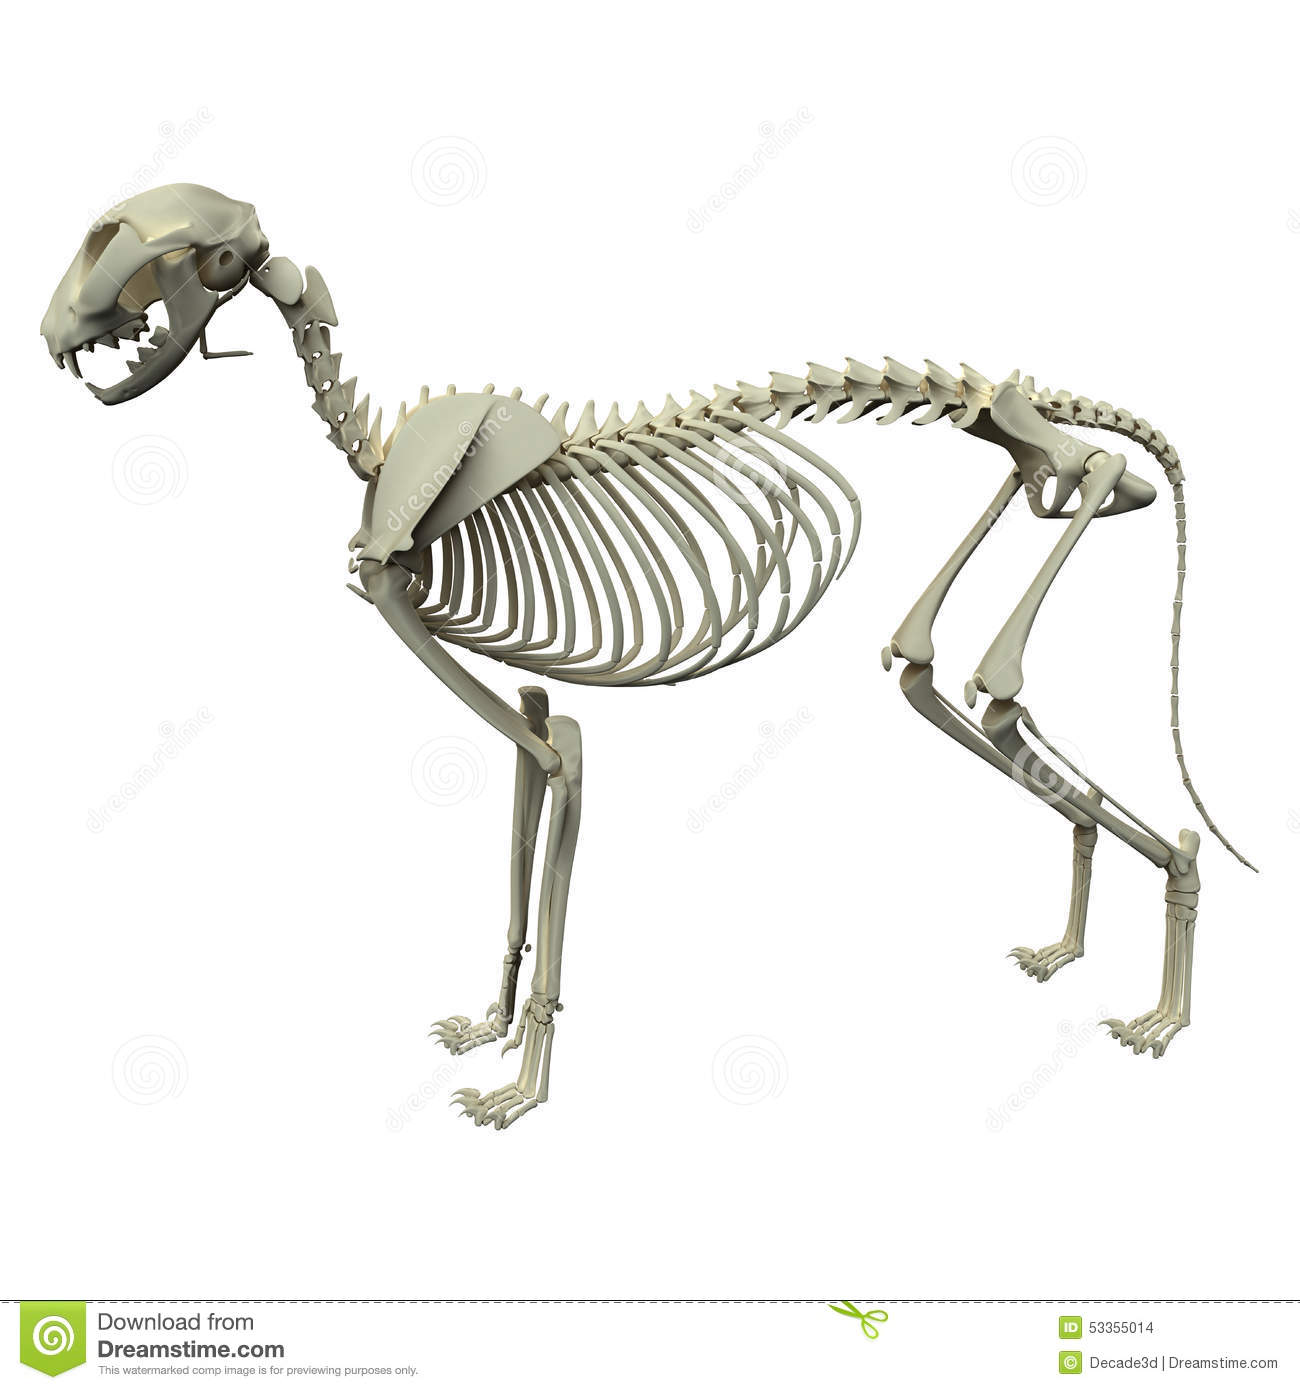 Dog Skeleton Anatomy - Anatomy Of A Male Dog Skeleton Stock Photo ...